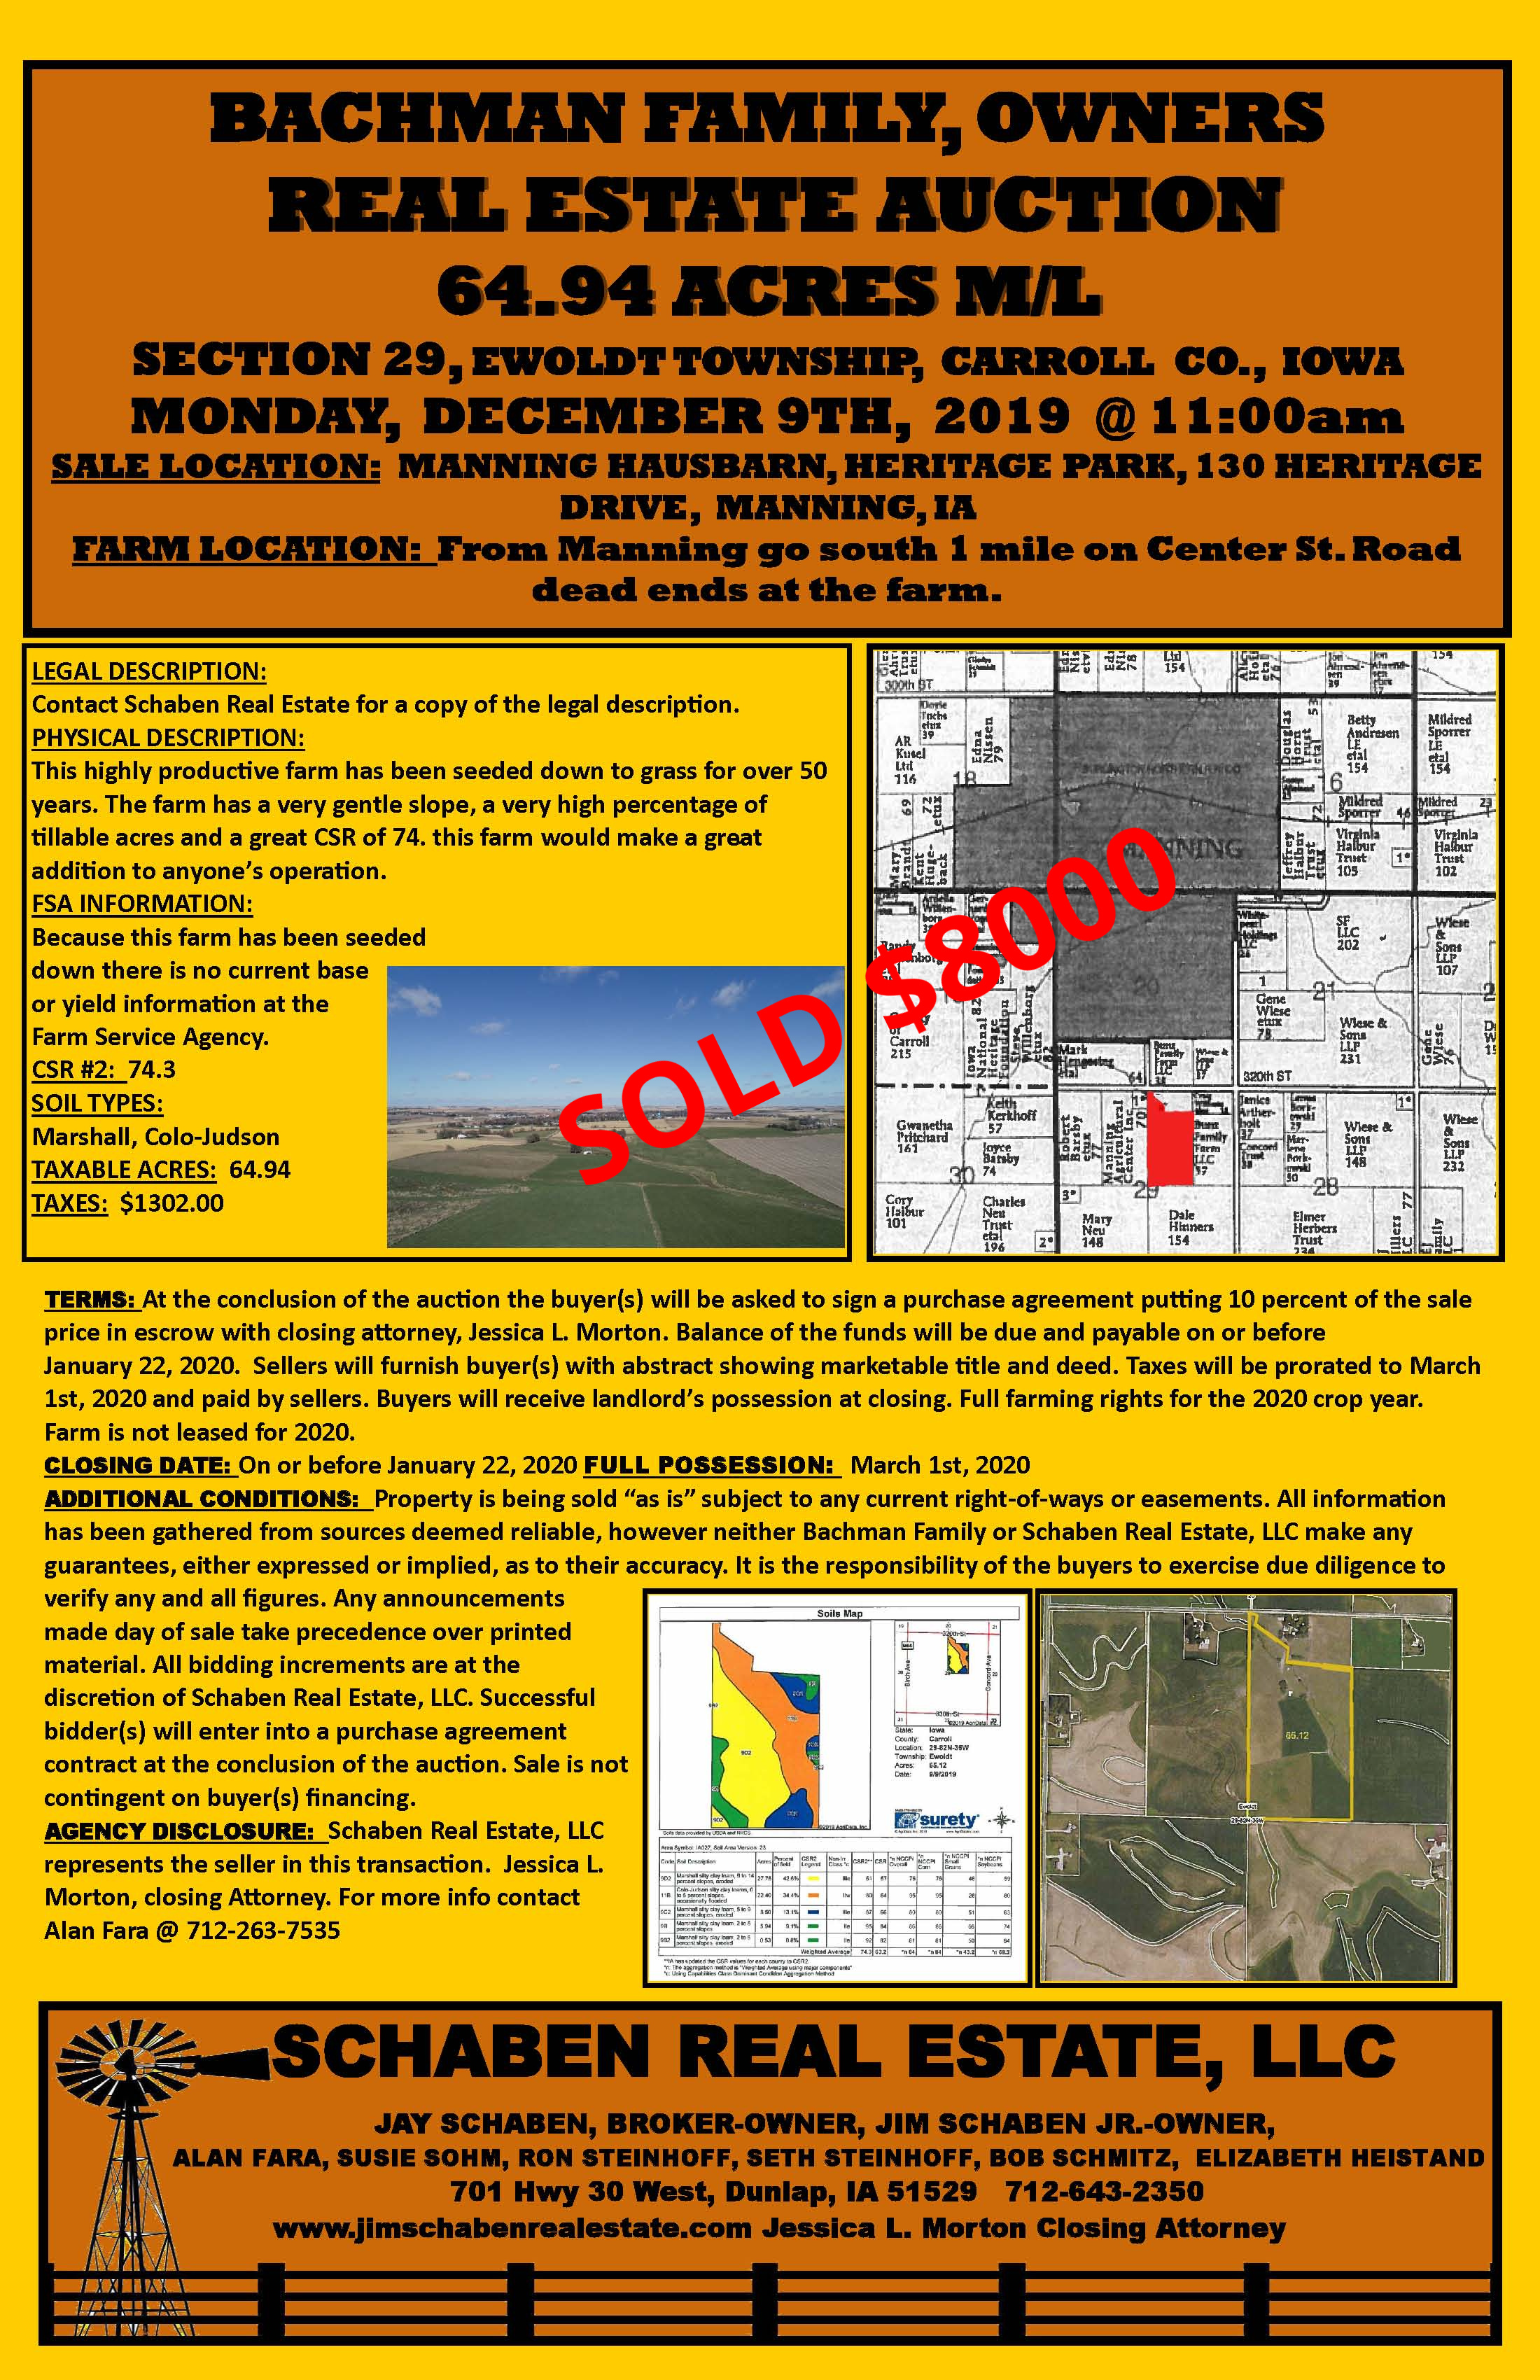 Bachman Family Land Auction